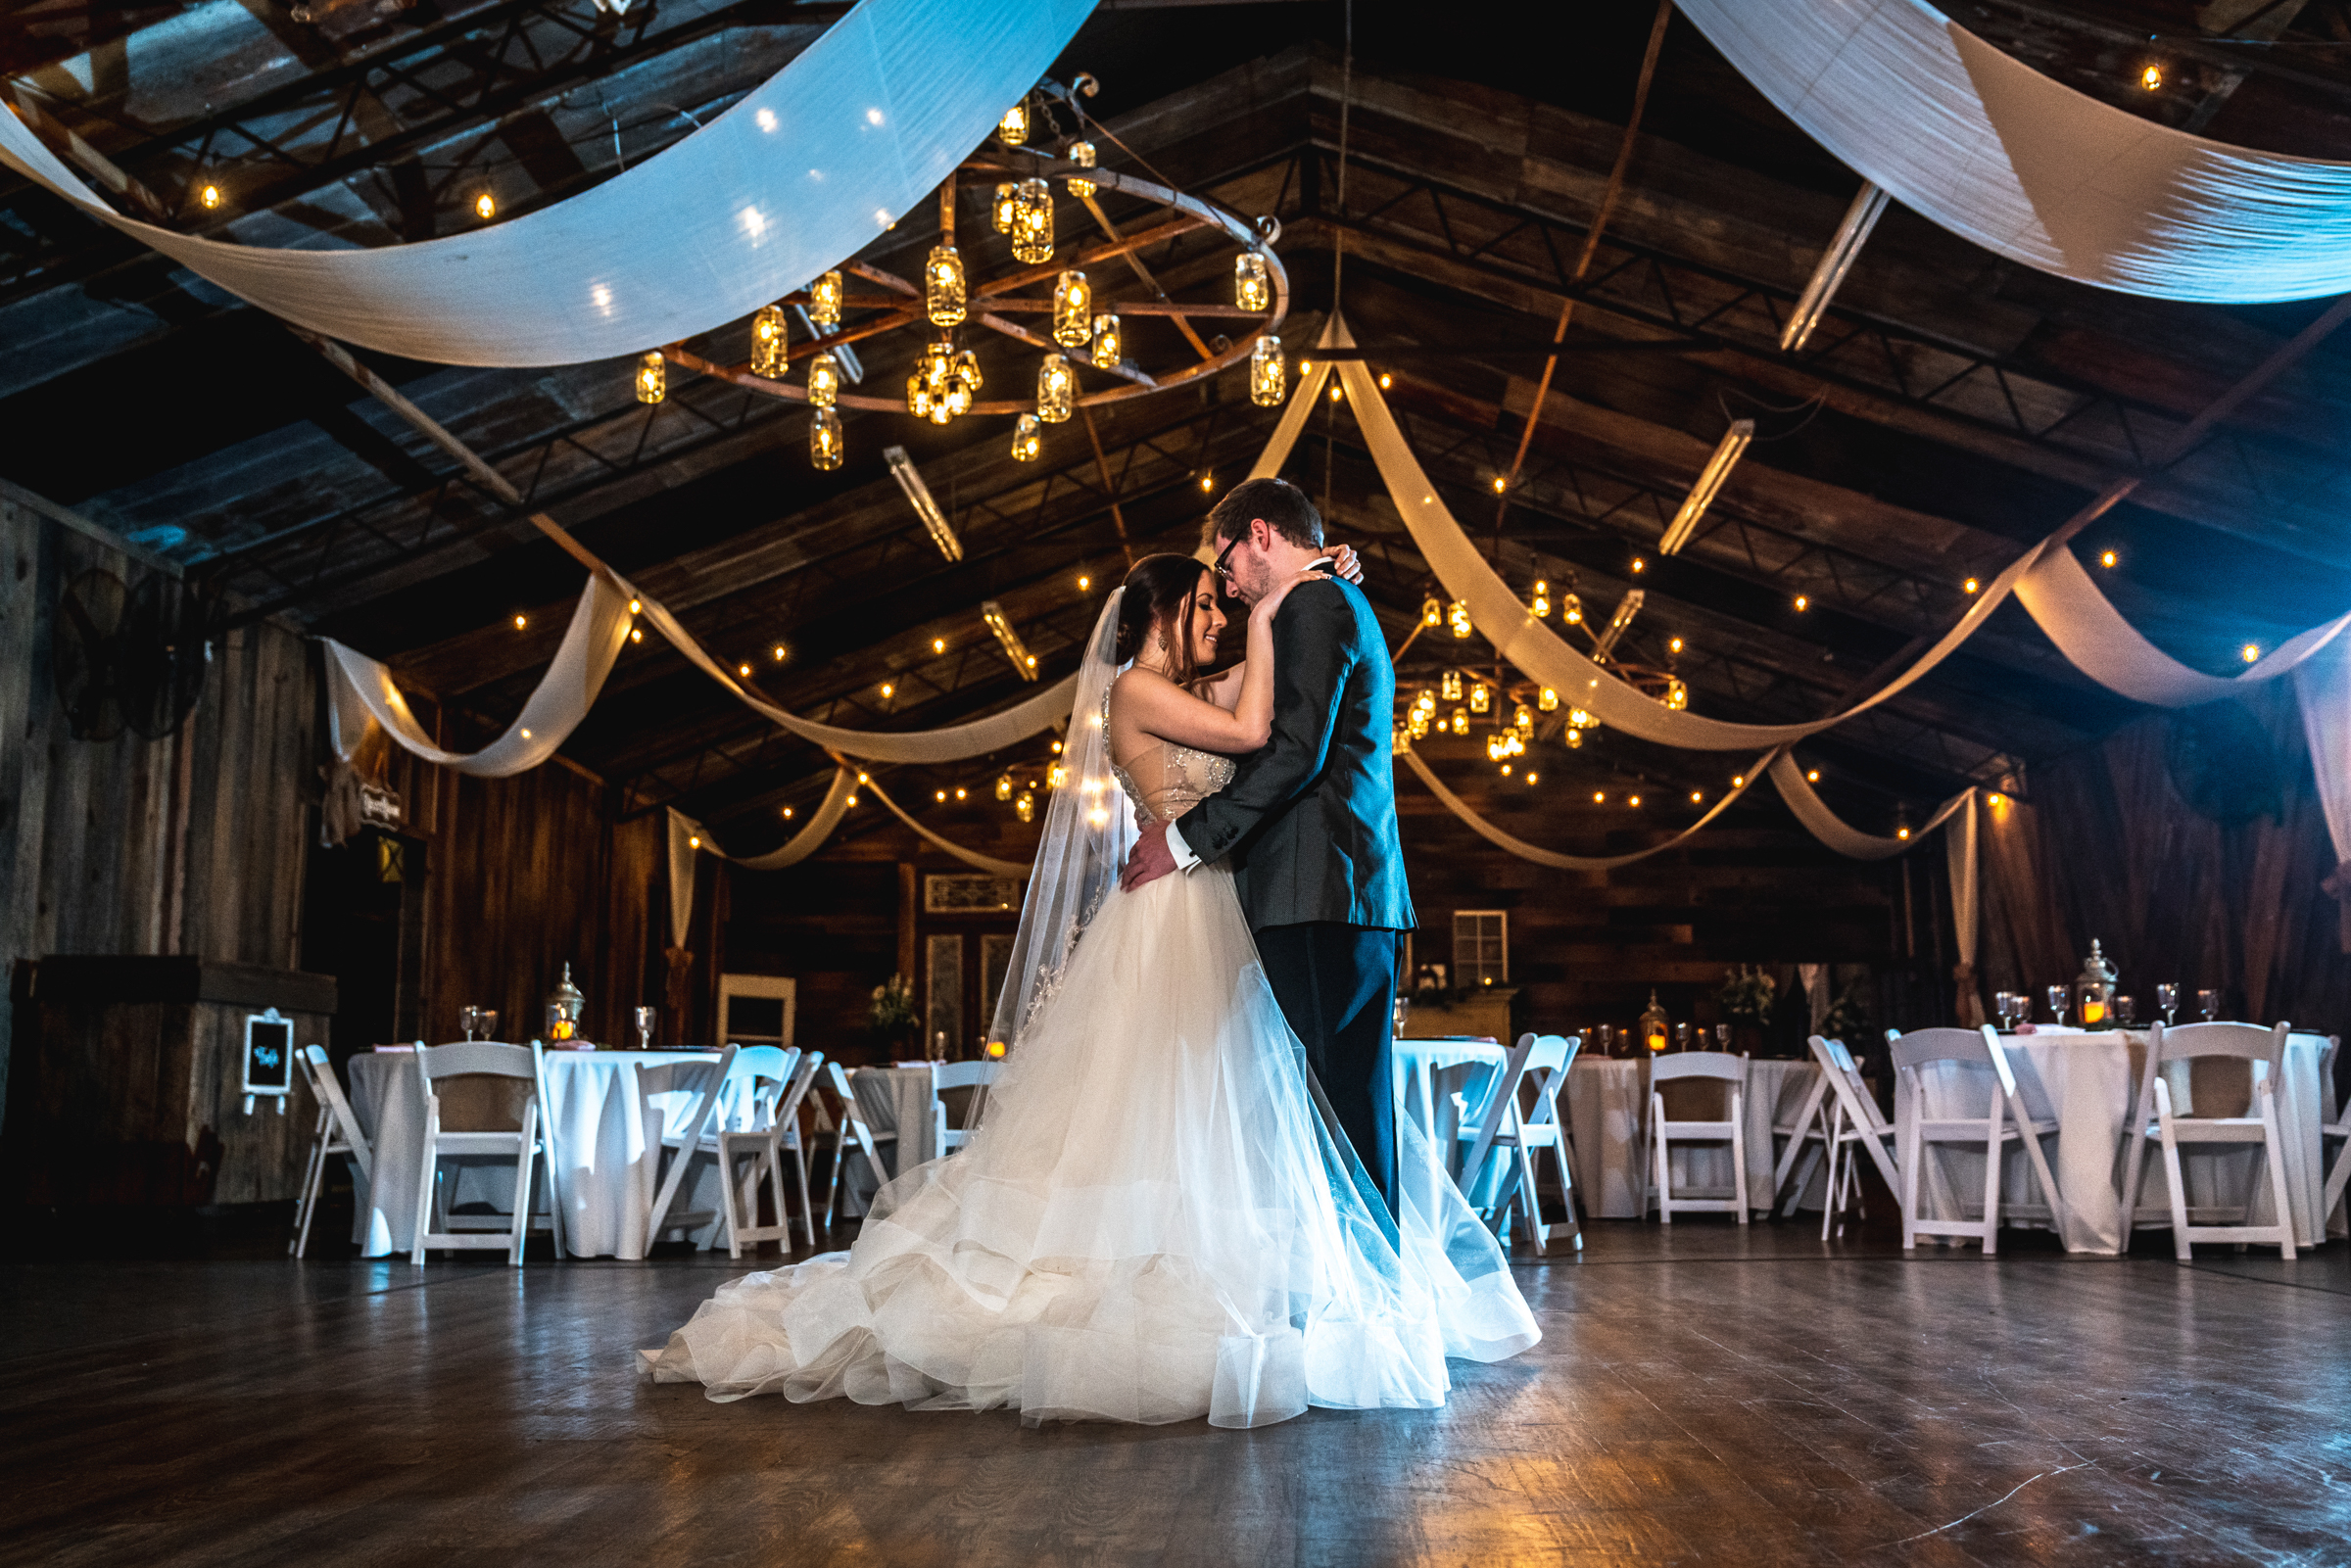 Wedding-couple-first-dance-Photography.jpg